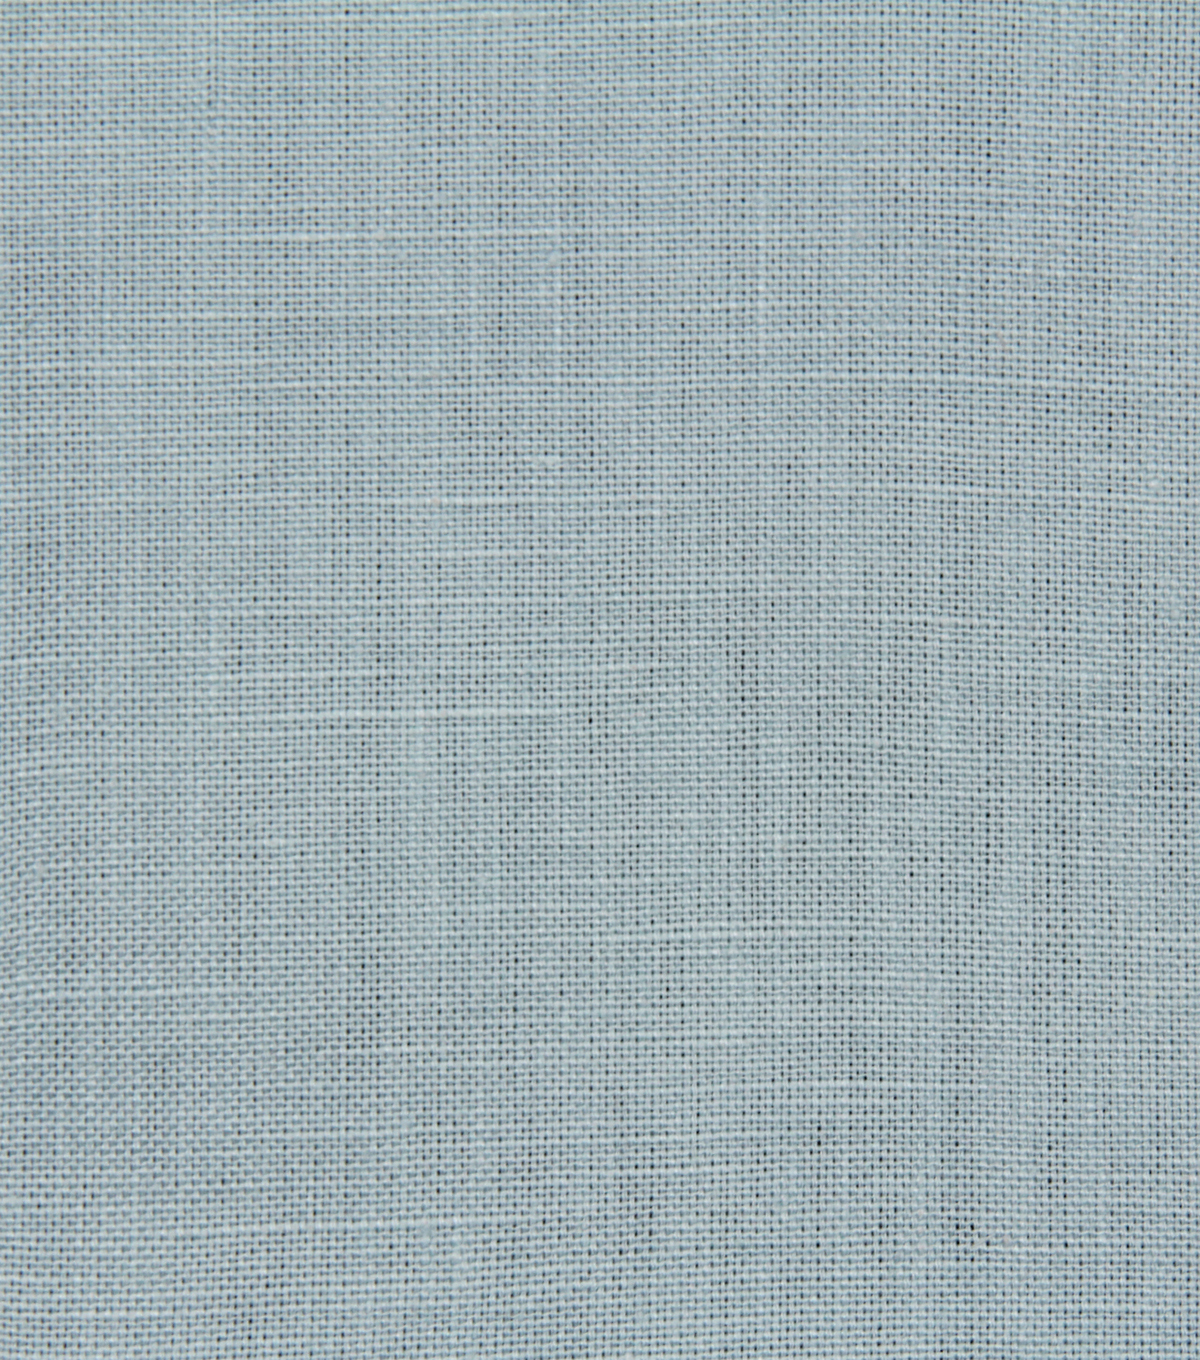 Home Decor 8\u0022x8\u0022 Fabric Swatch-Robert Allen Kilrush Hydrangea